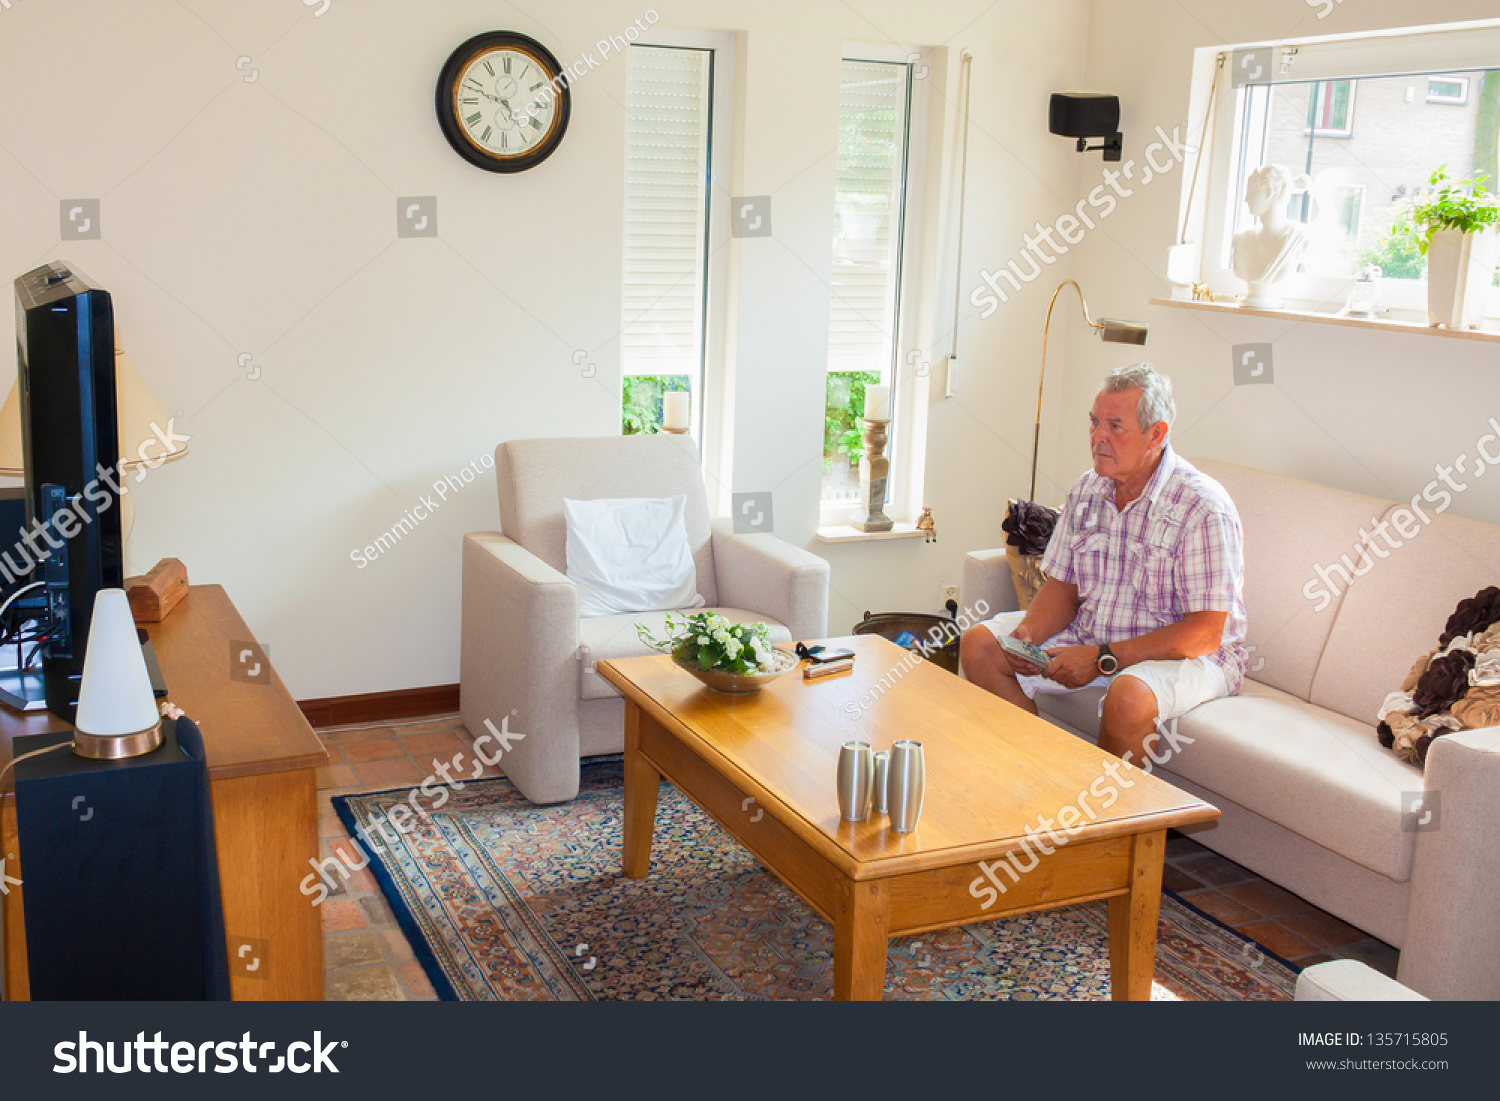 Man Living Room Senior Man Watching Tv In Modern Bright Living Room Stock Photo